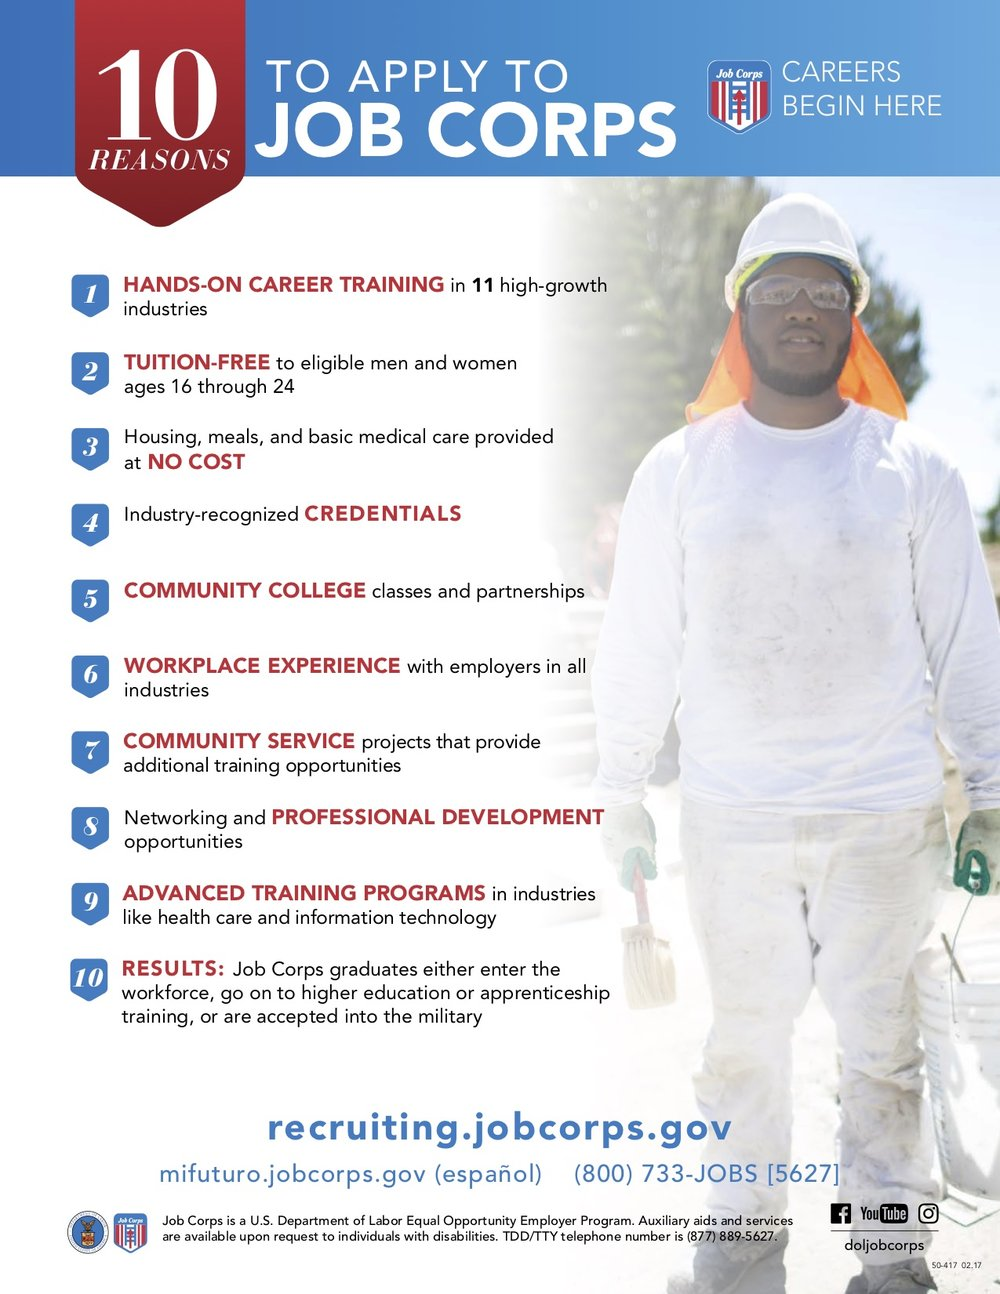 10 Reasons to Apply to Job Corps.jpg